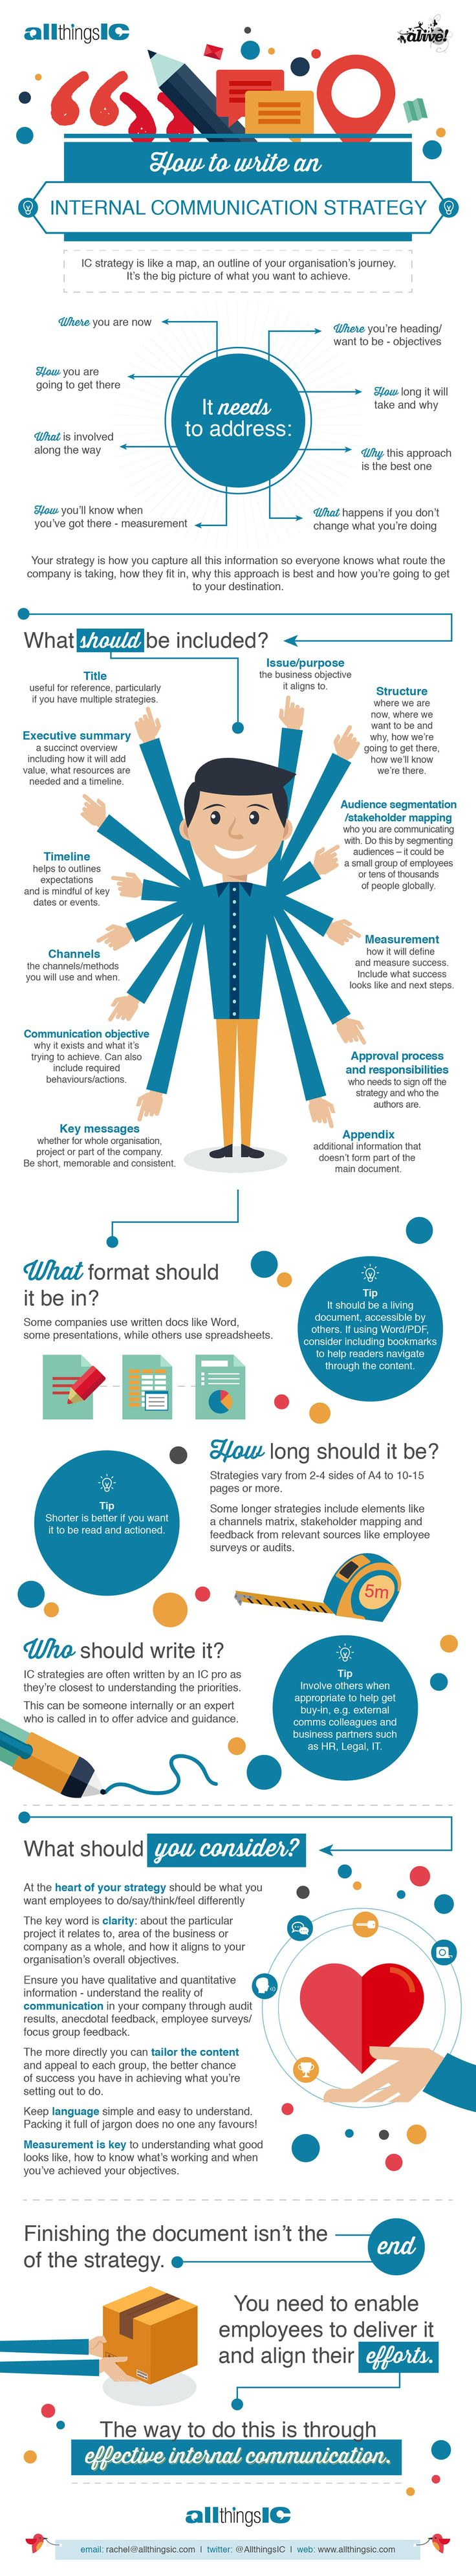 How to Write an Internal Communication Strategy #infographic ~ Visualistan